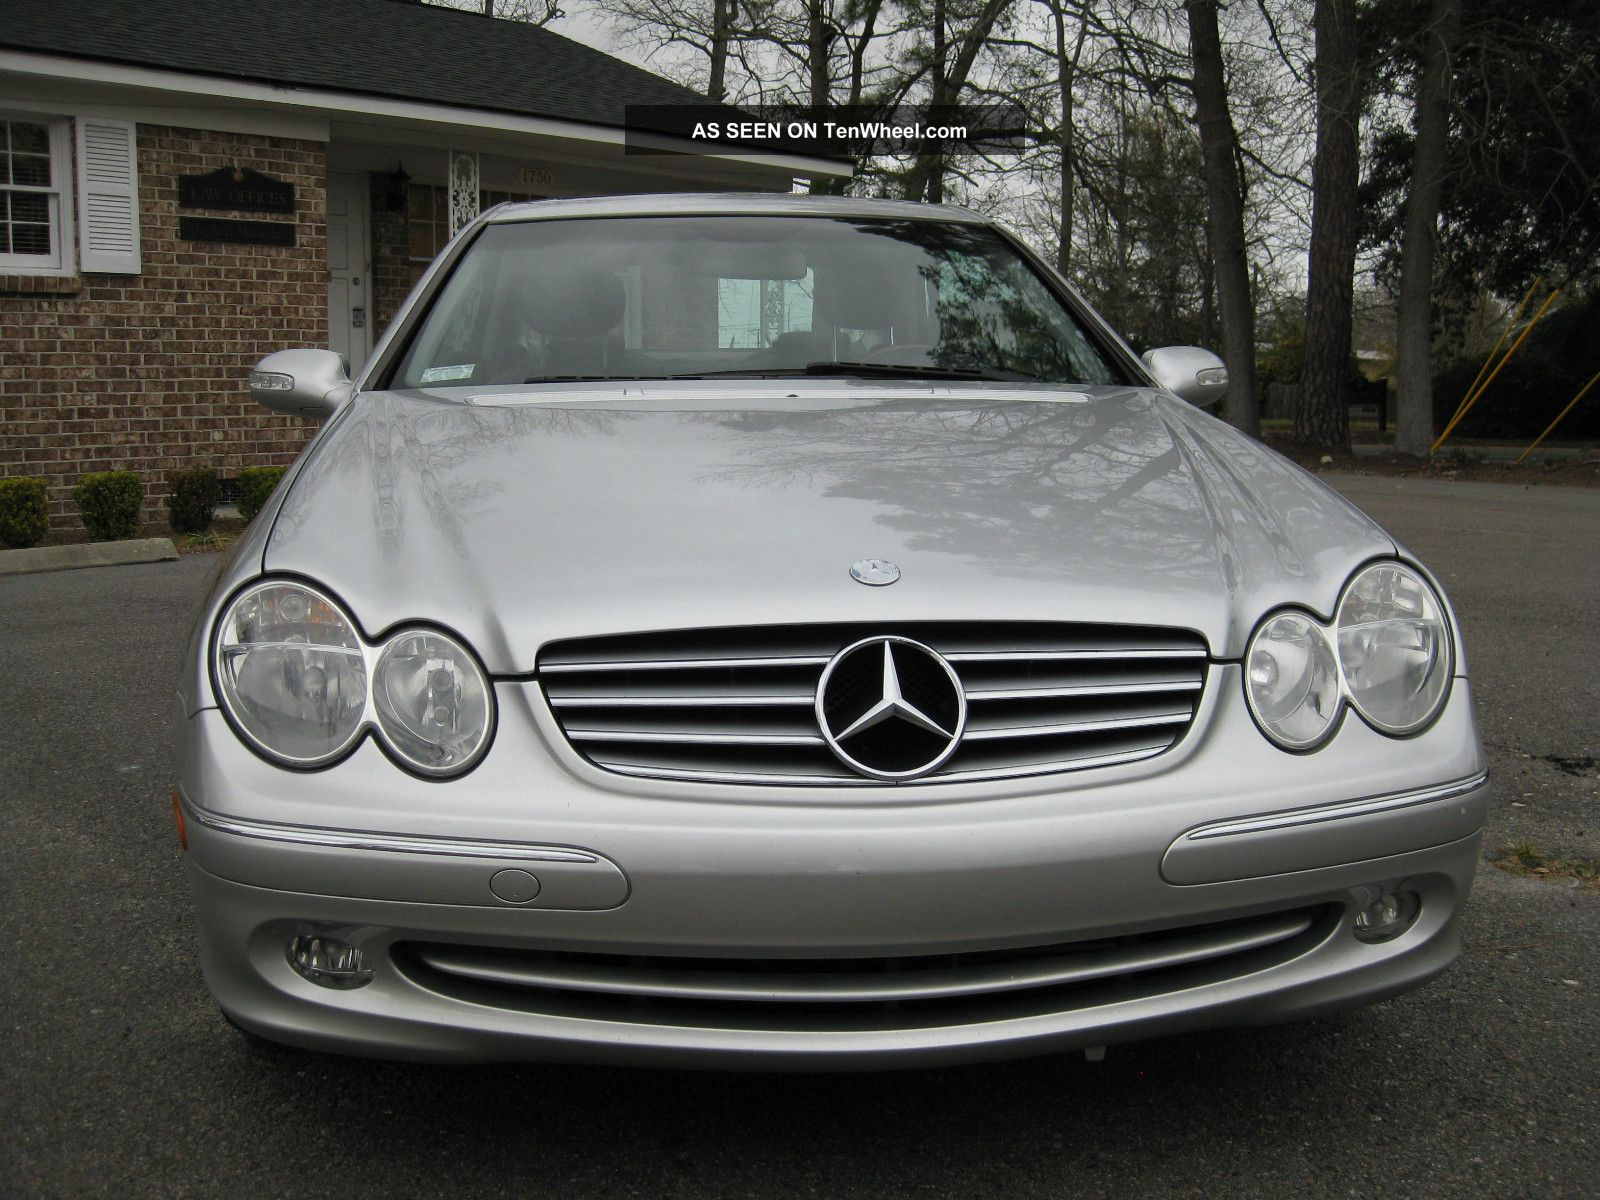 2004 mercedes benz clk 320 for 2004 mercedes benz g class